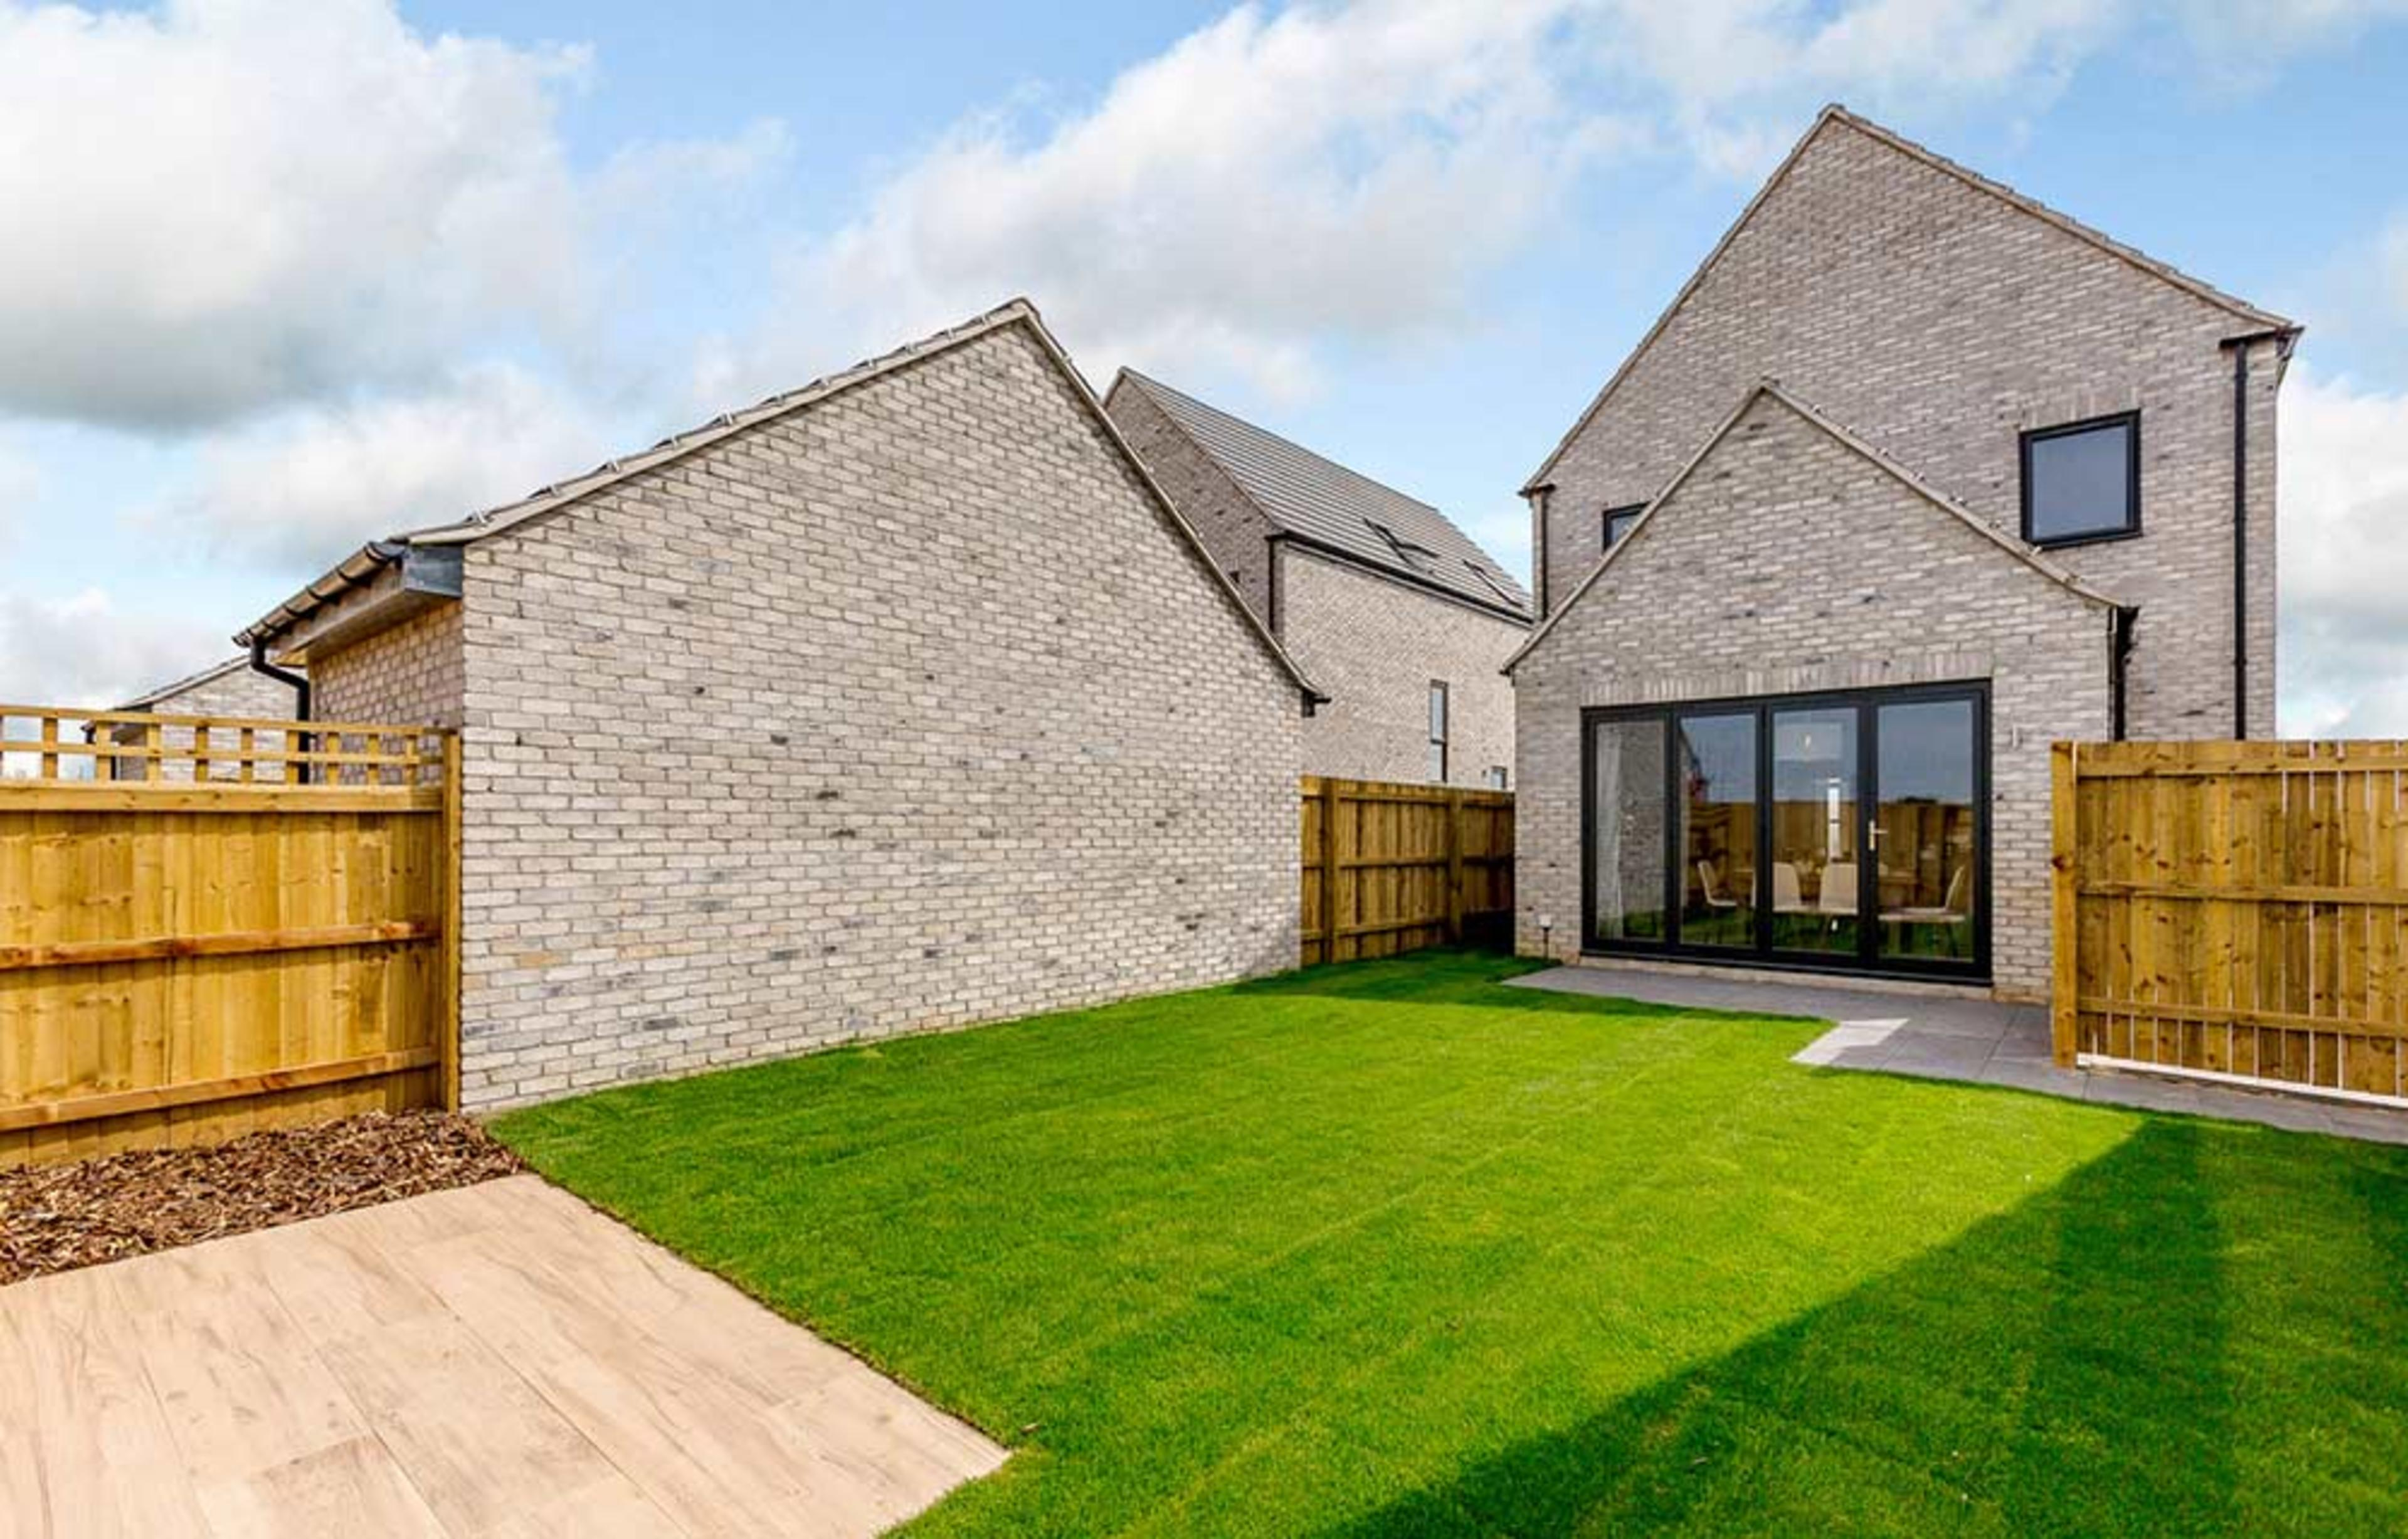 Rear garden, lawn and fencing of a new-build detached home at Meaux Rise